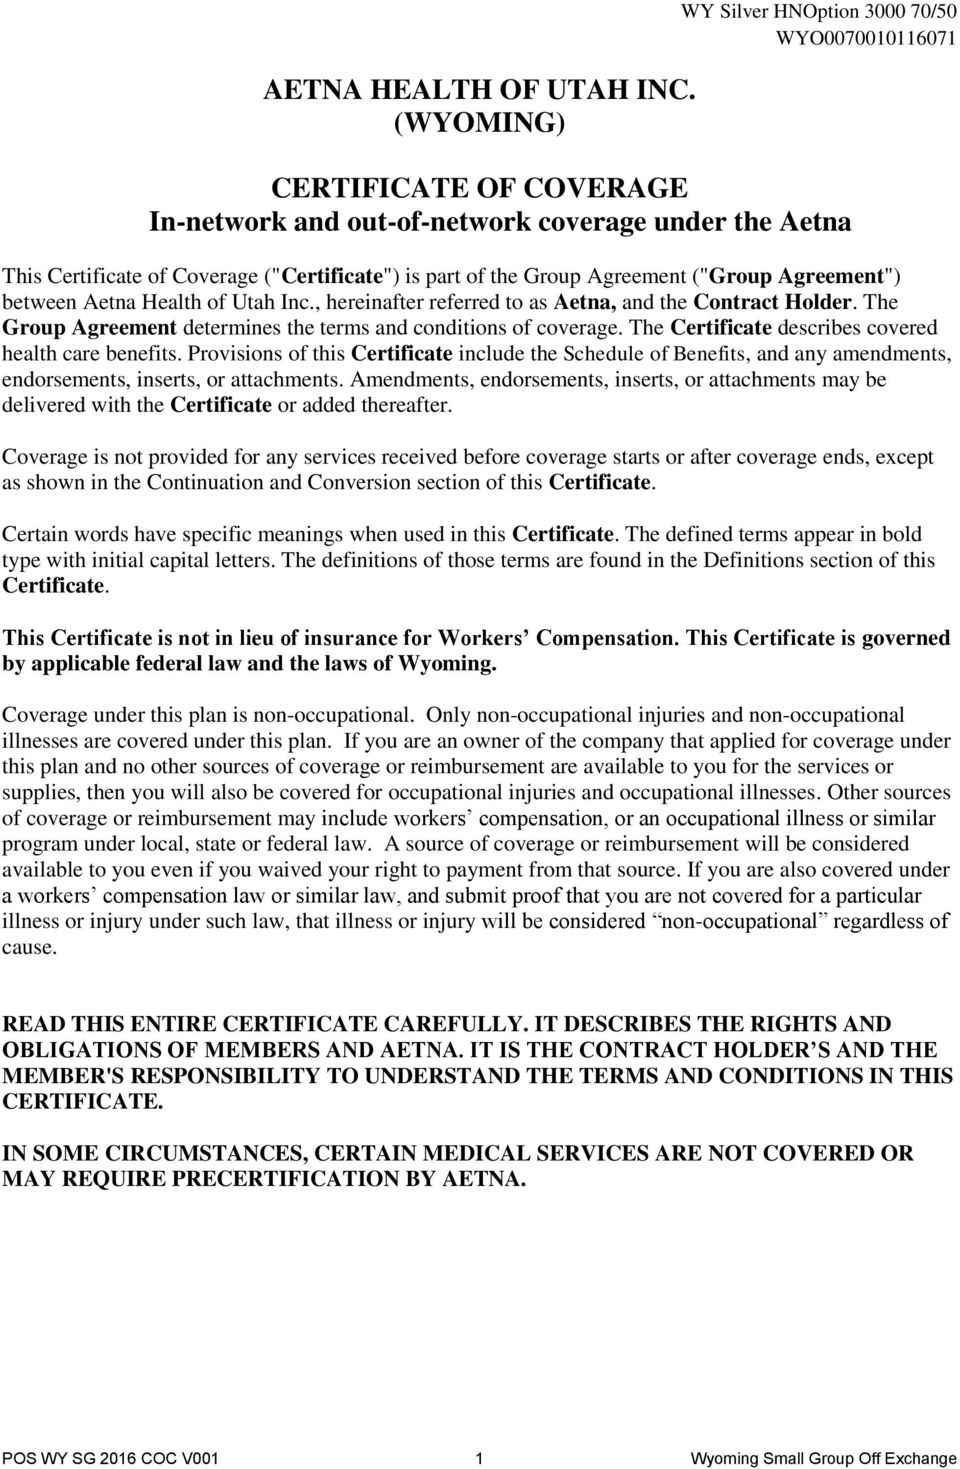 "Group Agreement (""Group Agreement"") between Aetna Health of Utah Inc., hereinafter referred to as Aetna, and the Contract Holder. The Group Agreement determines the terms and conditions of coverage."